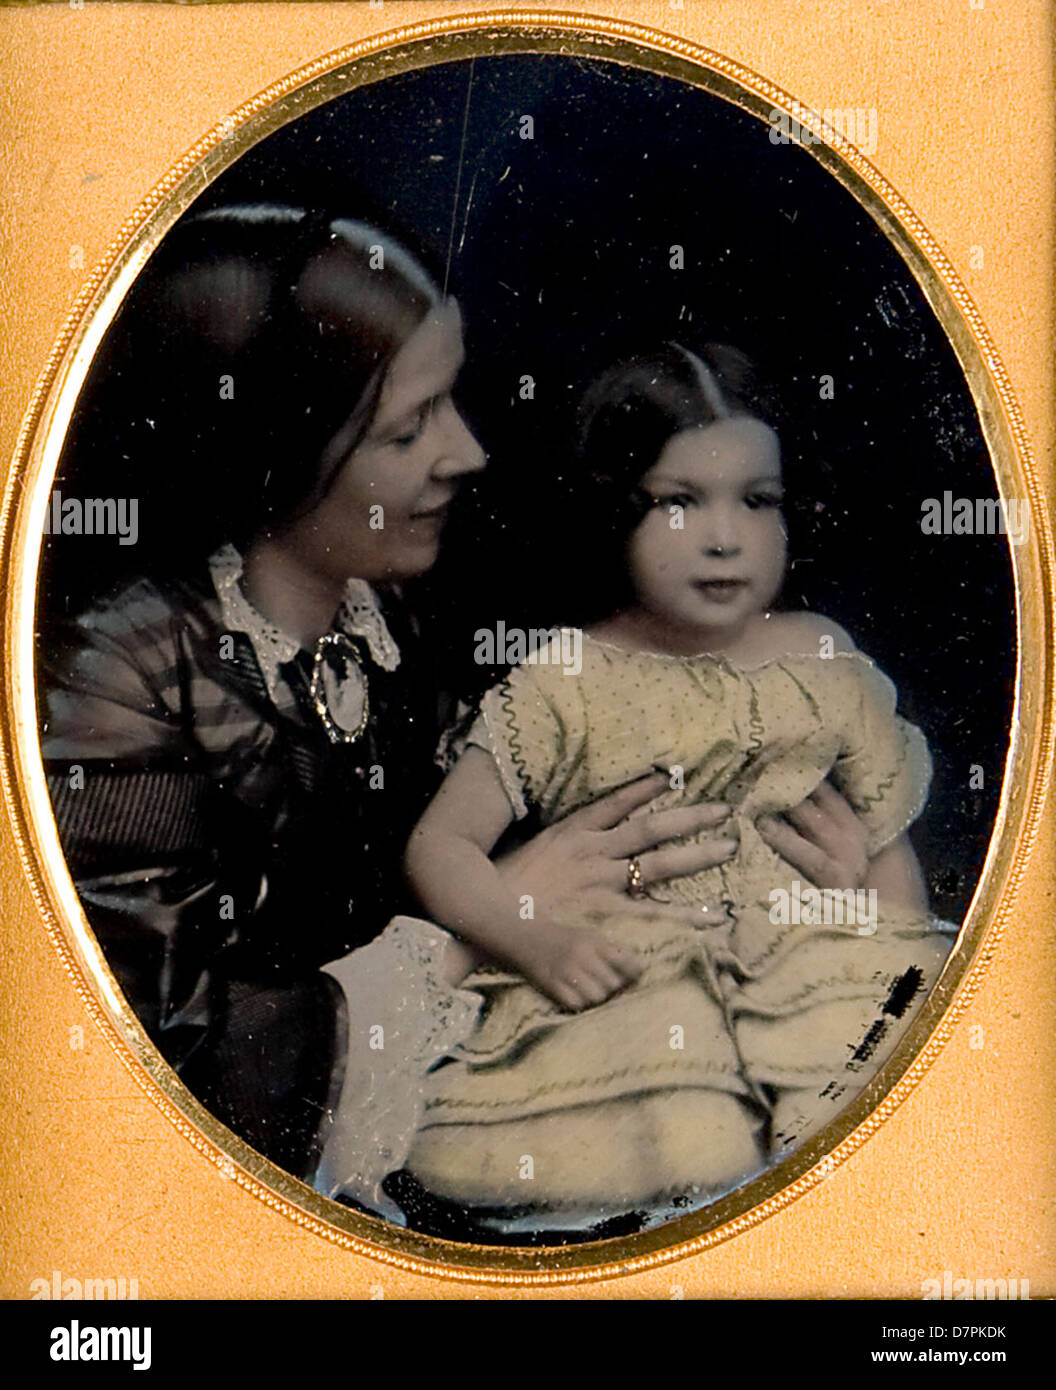 Unidentified young girl and mother - Stock Image